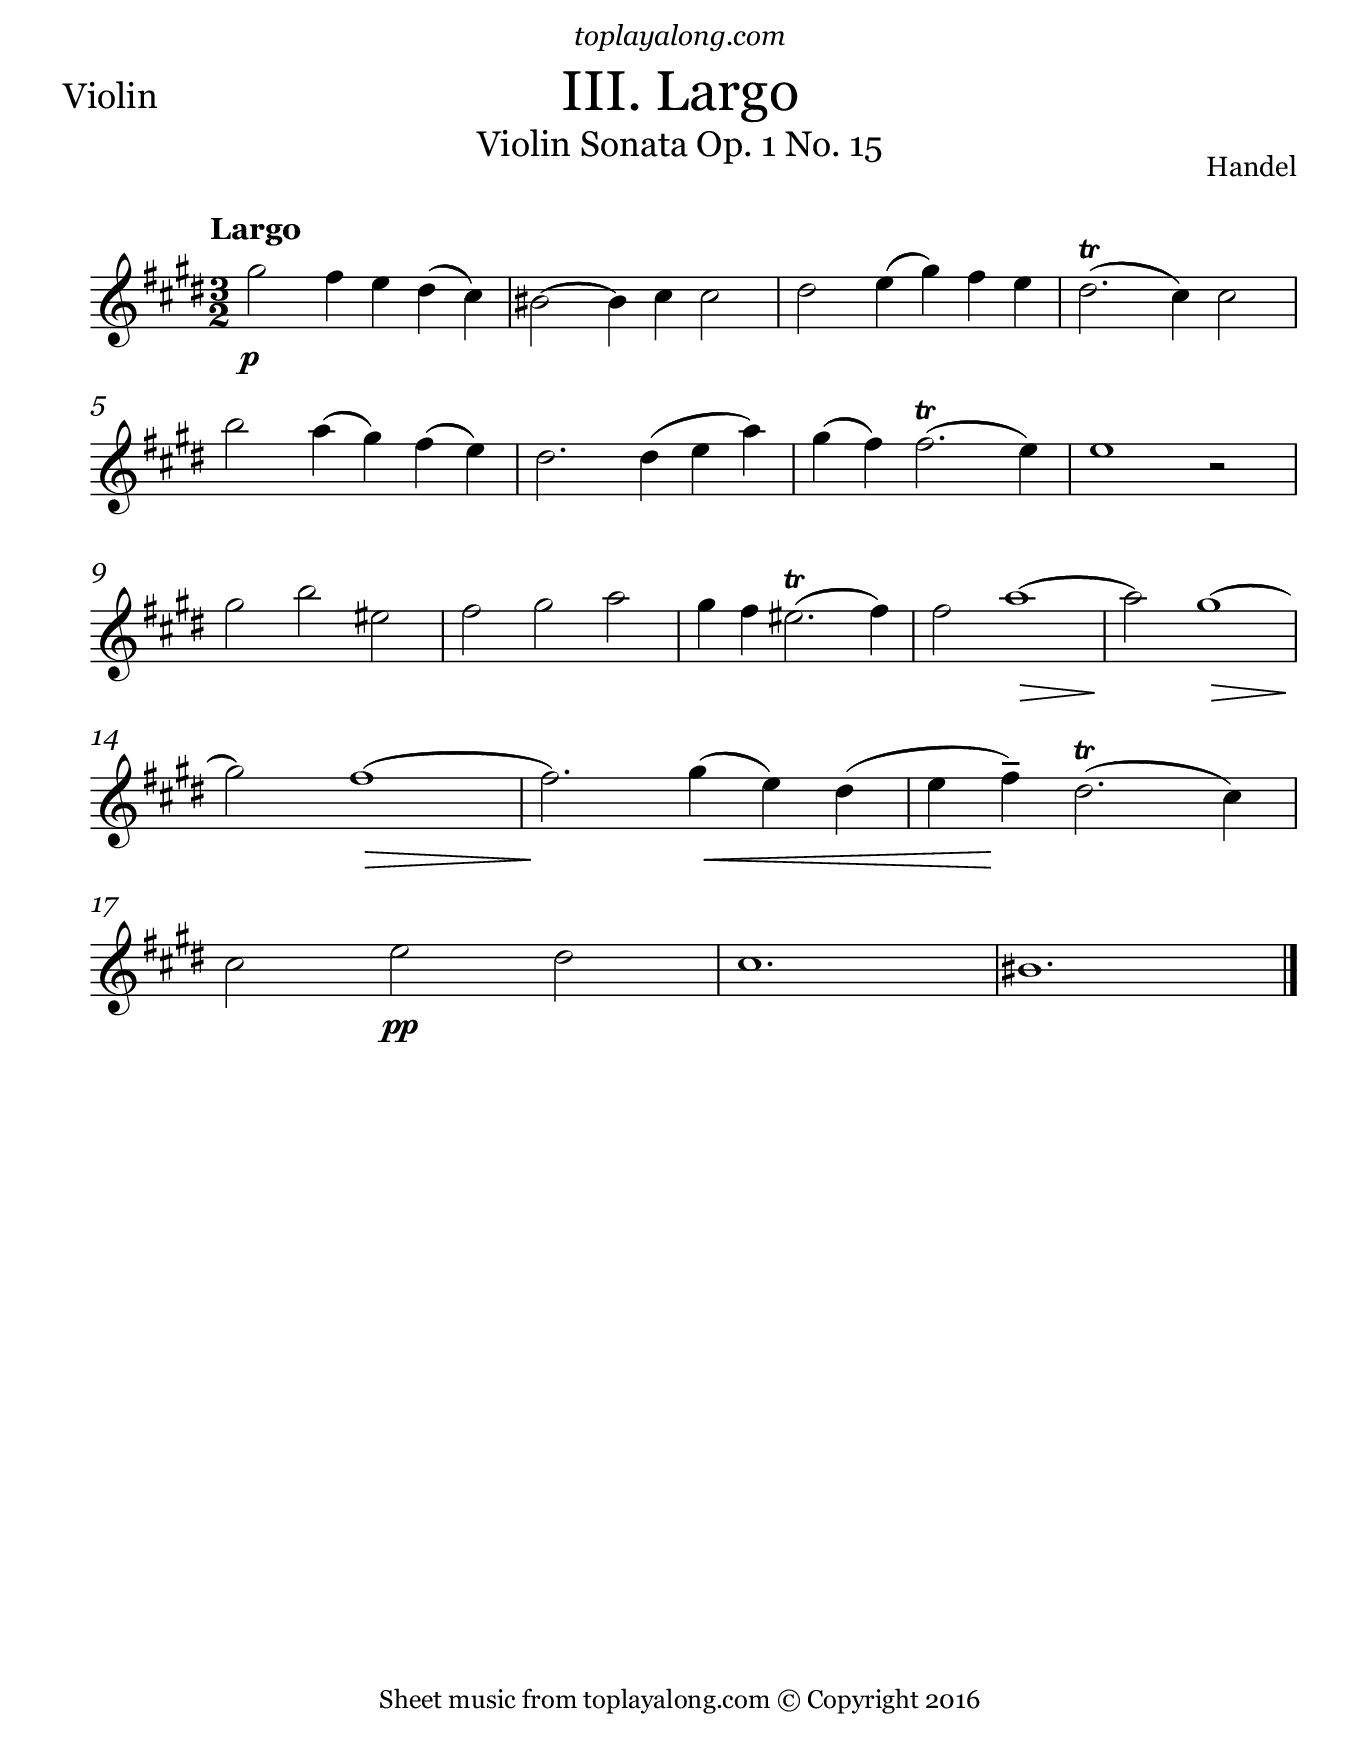 Violin Sonata Op. 1 No. 15 (III. Largo) by Handel. Sheet music for Violin, page 1.